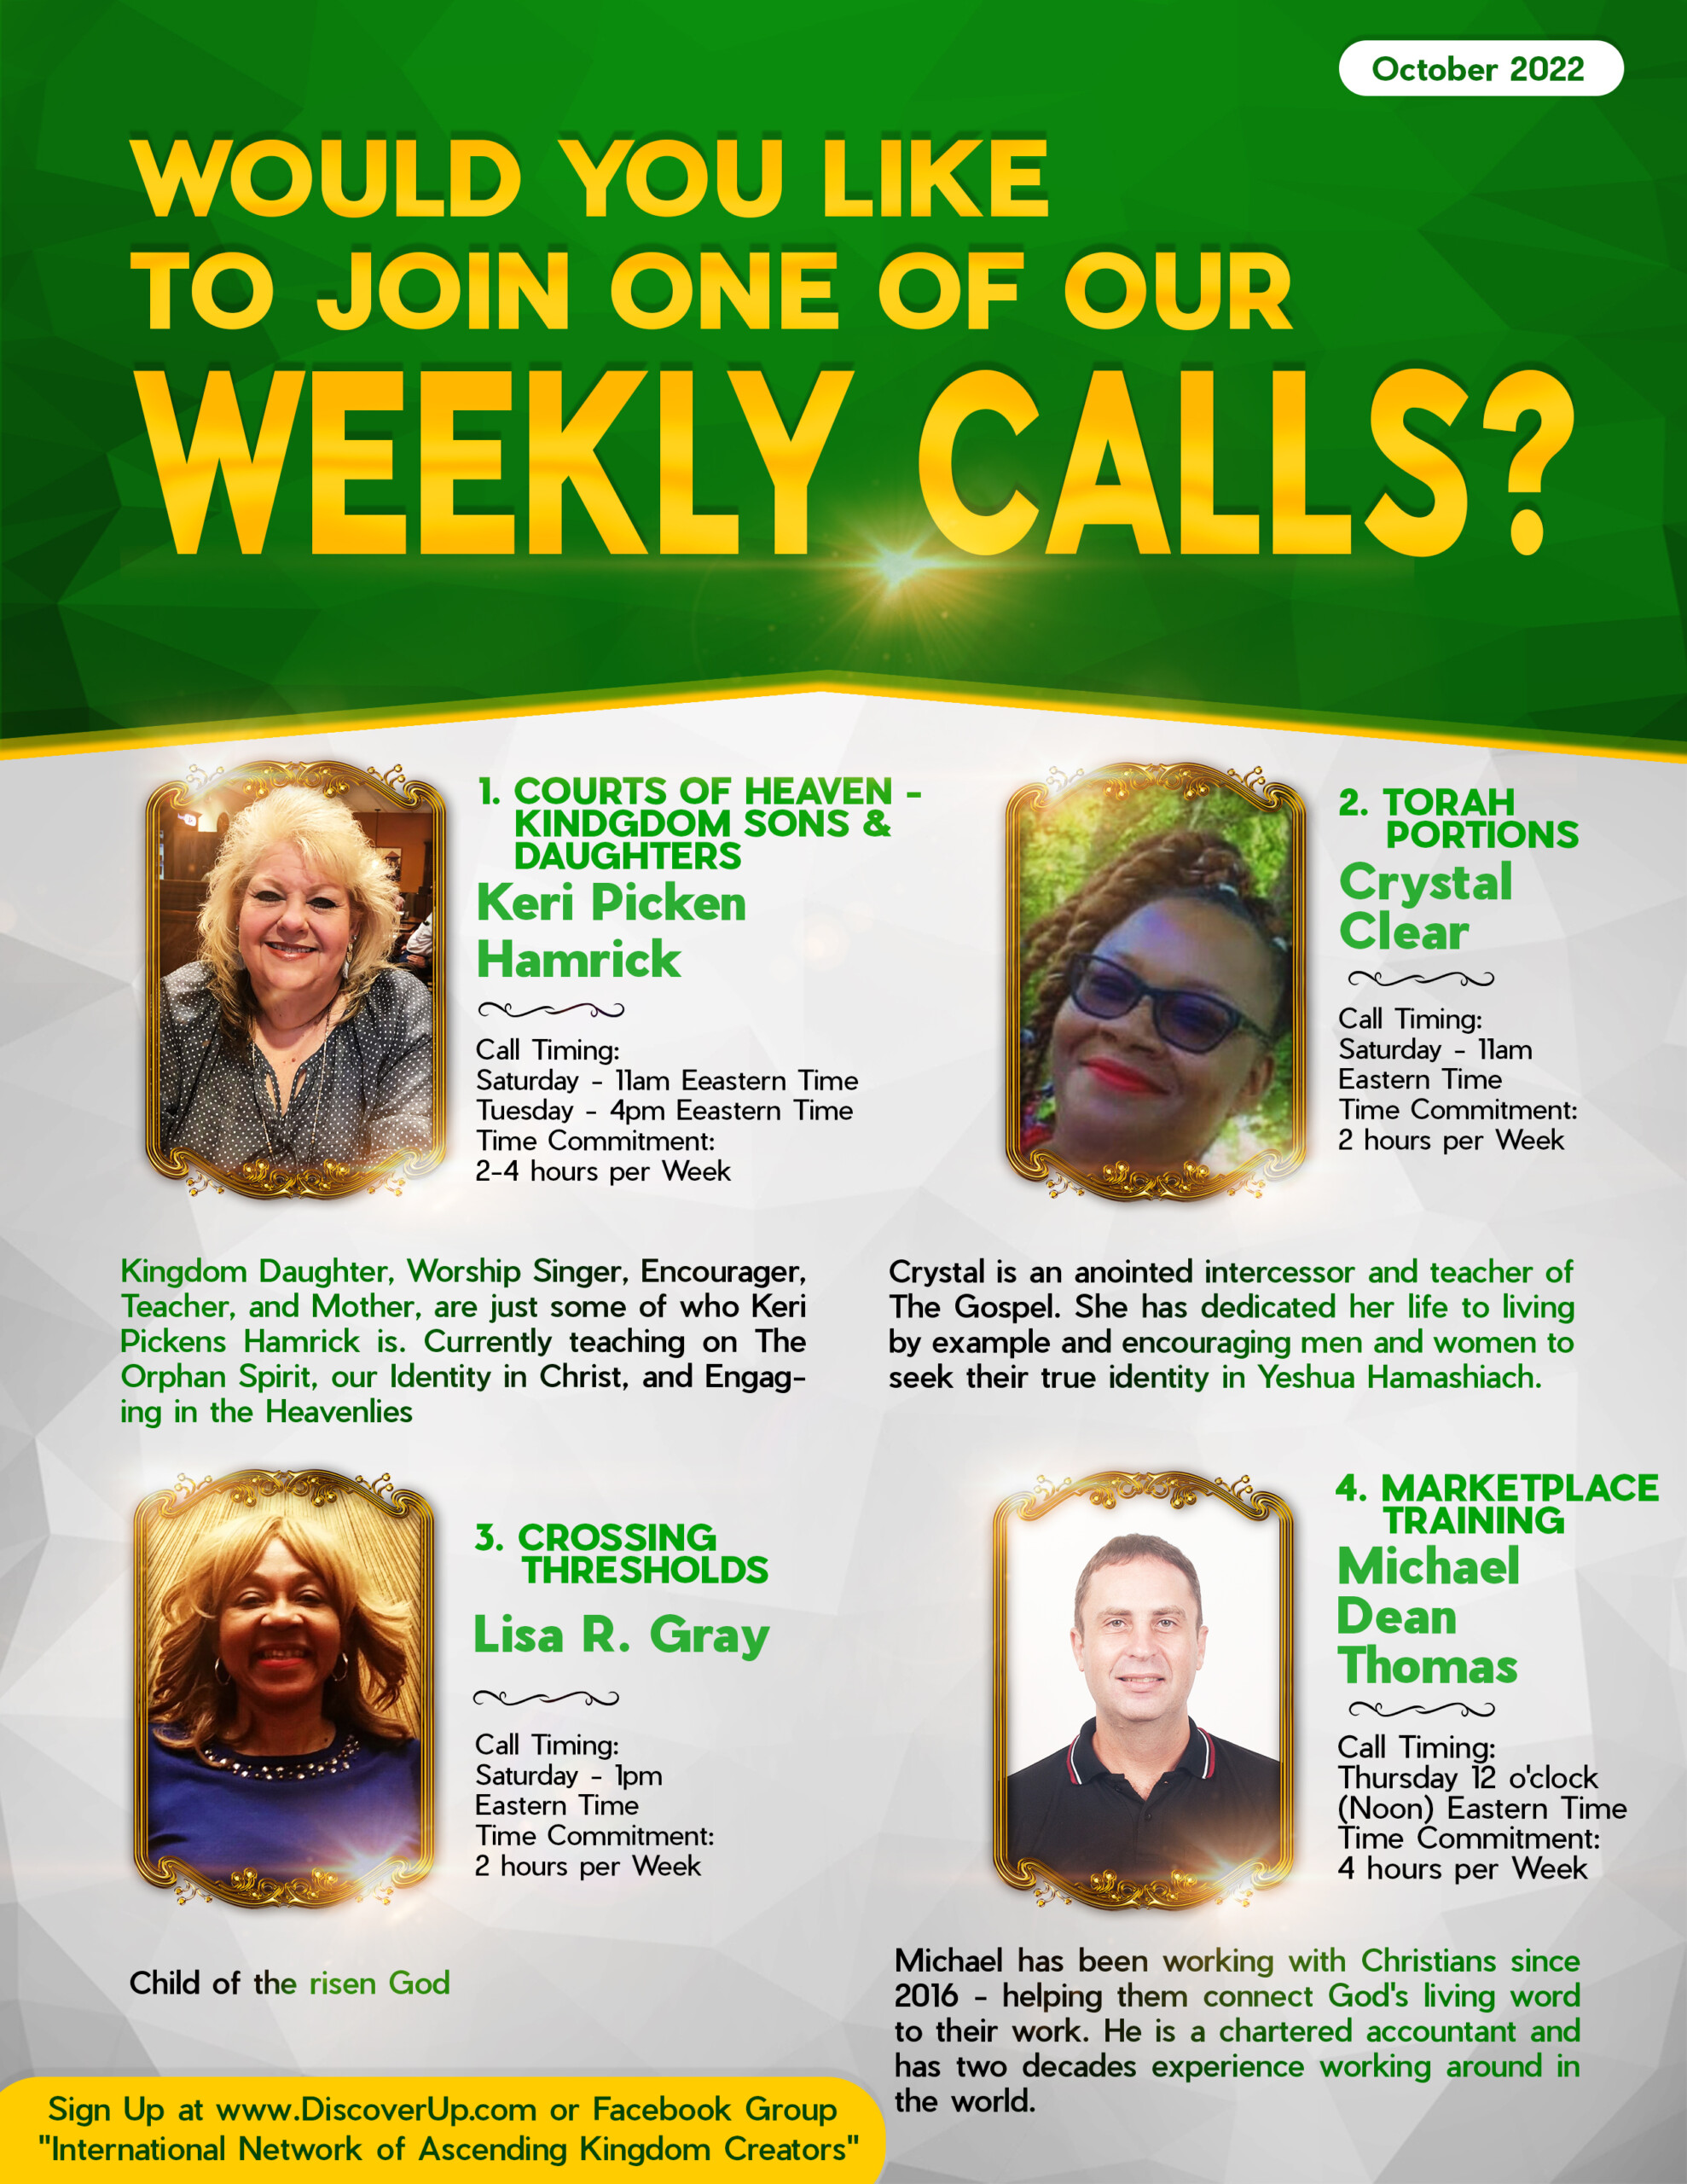 Sign up For a One of Our Weekly Calls at the Discover Up community